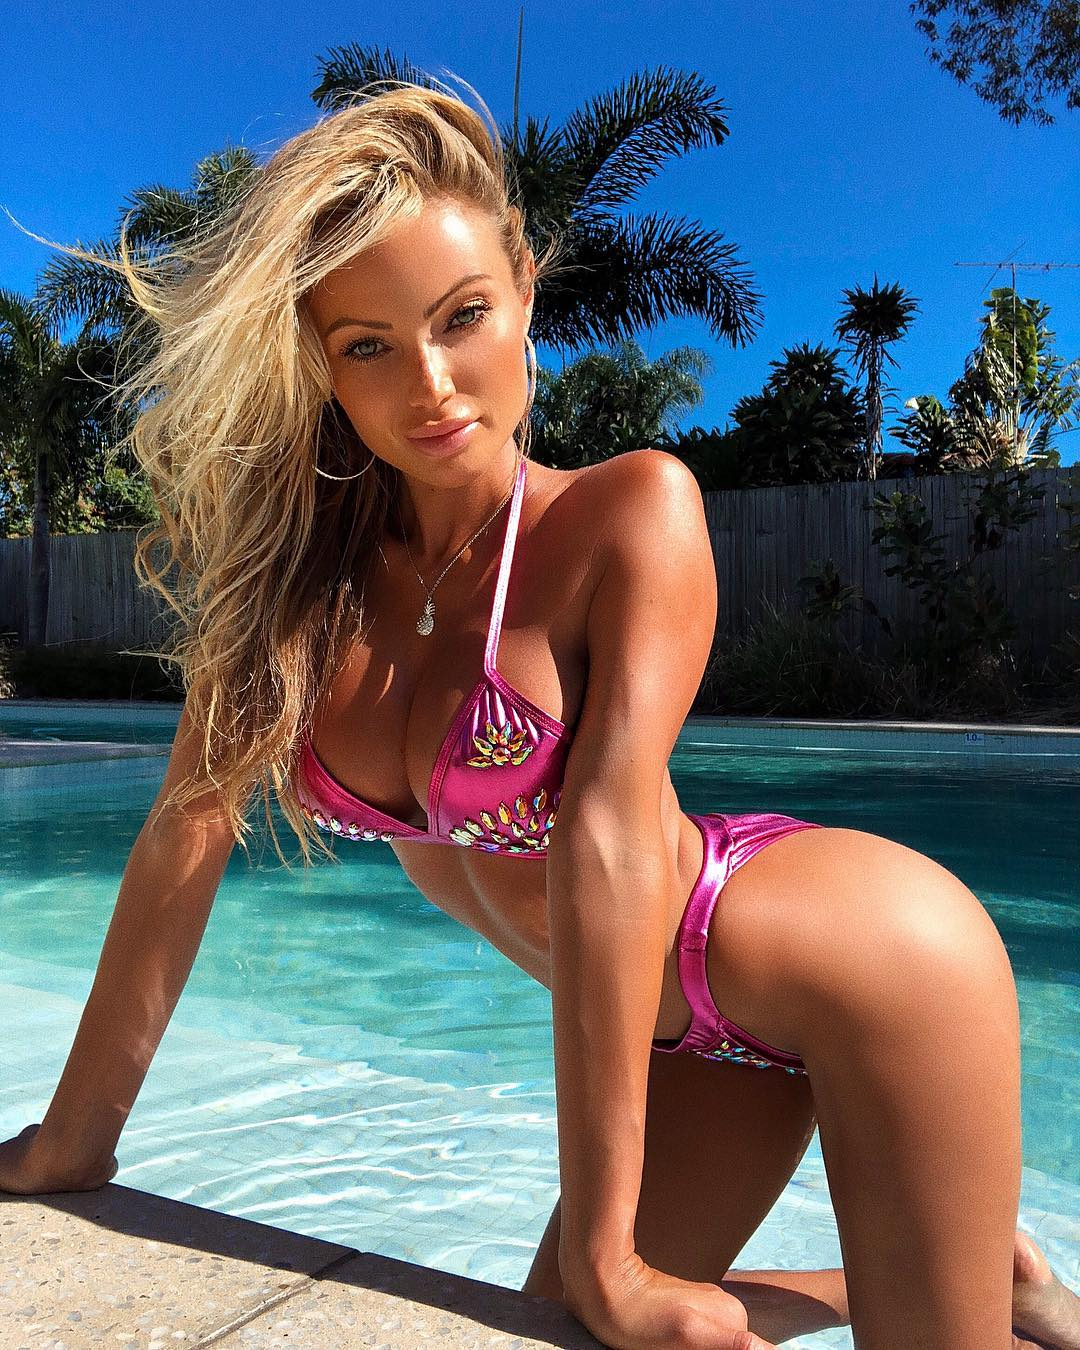 Cleavage Abby Dowse nude photos 2019